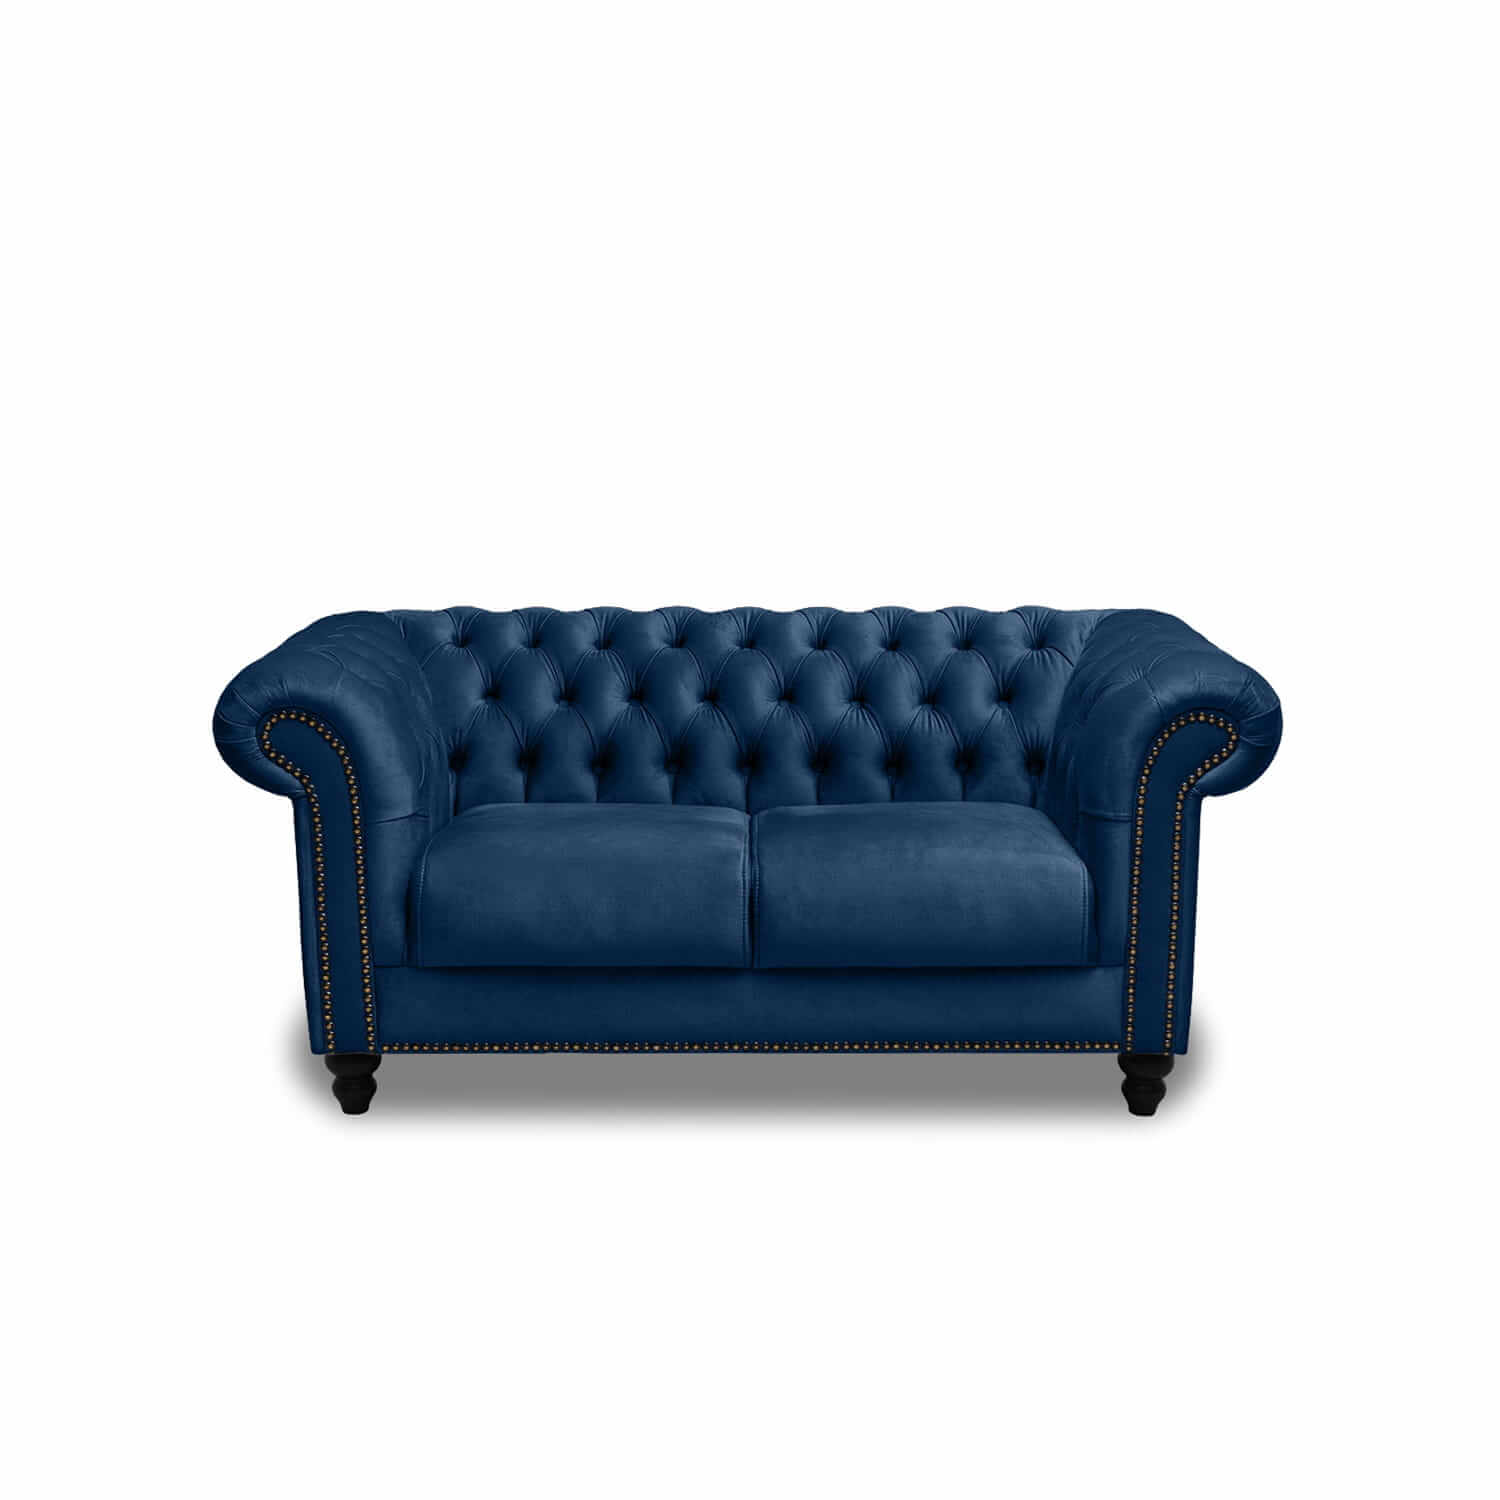 https://www.excluzive.se/wp-content/uploads/2020/10/Chesterfield-2-sits-Bla.jpg